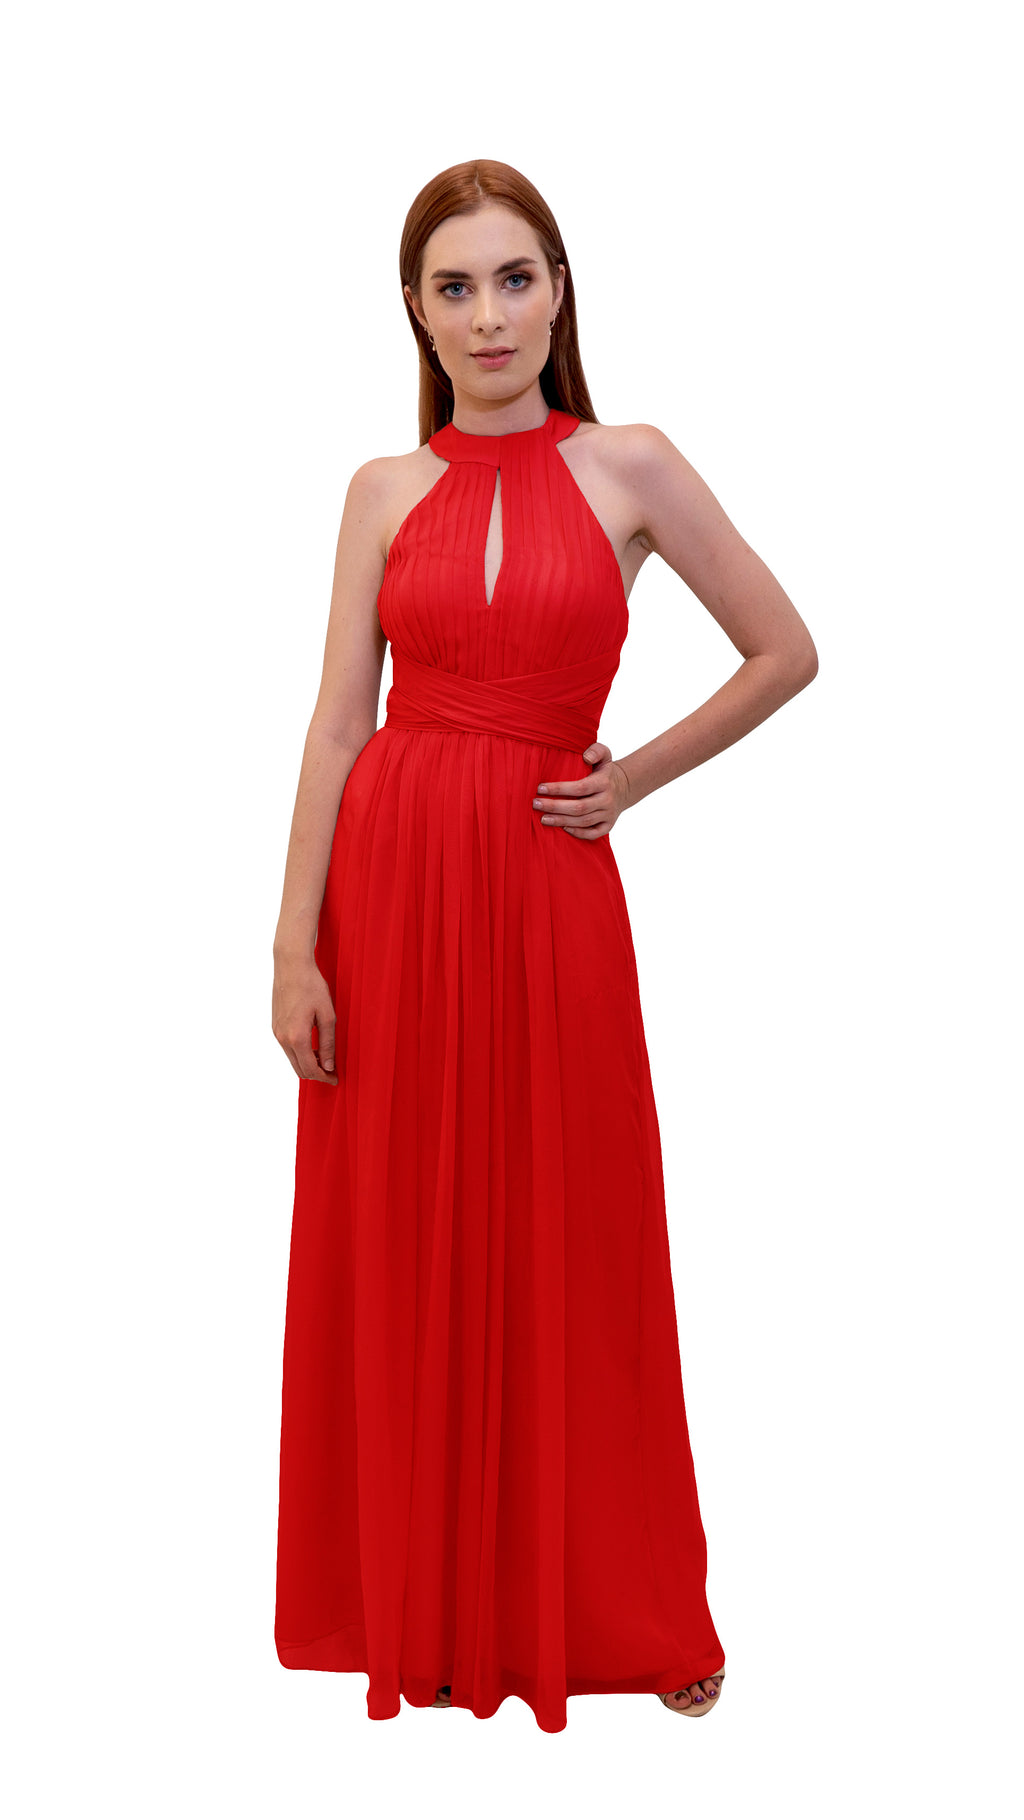 Bariano High Neck Dress Cherry